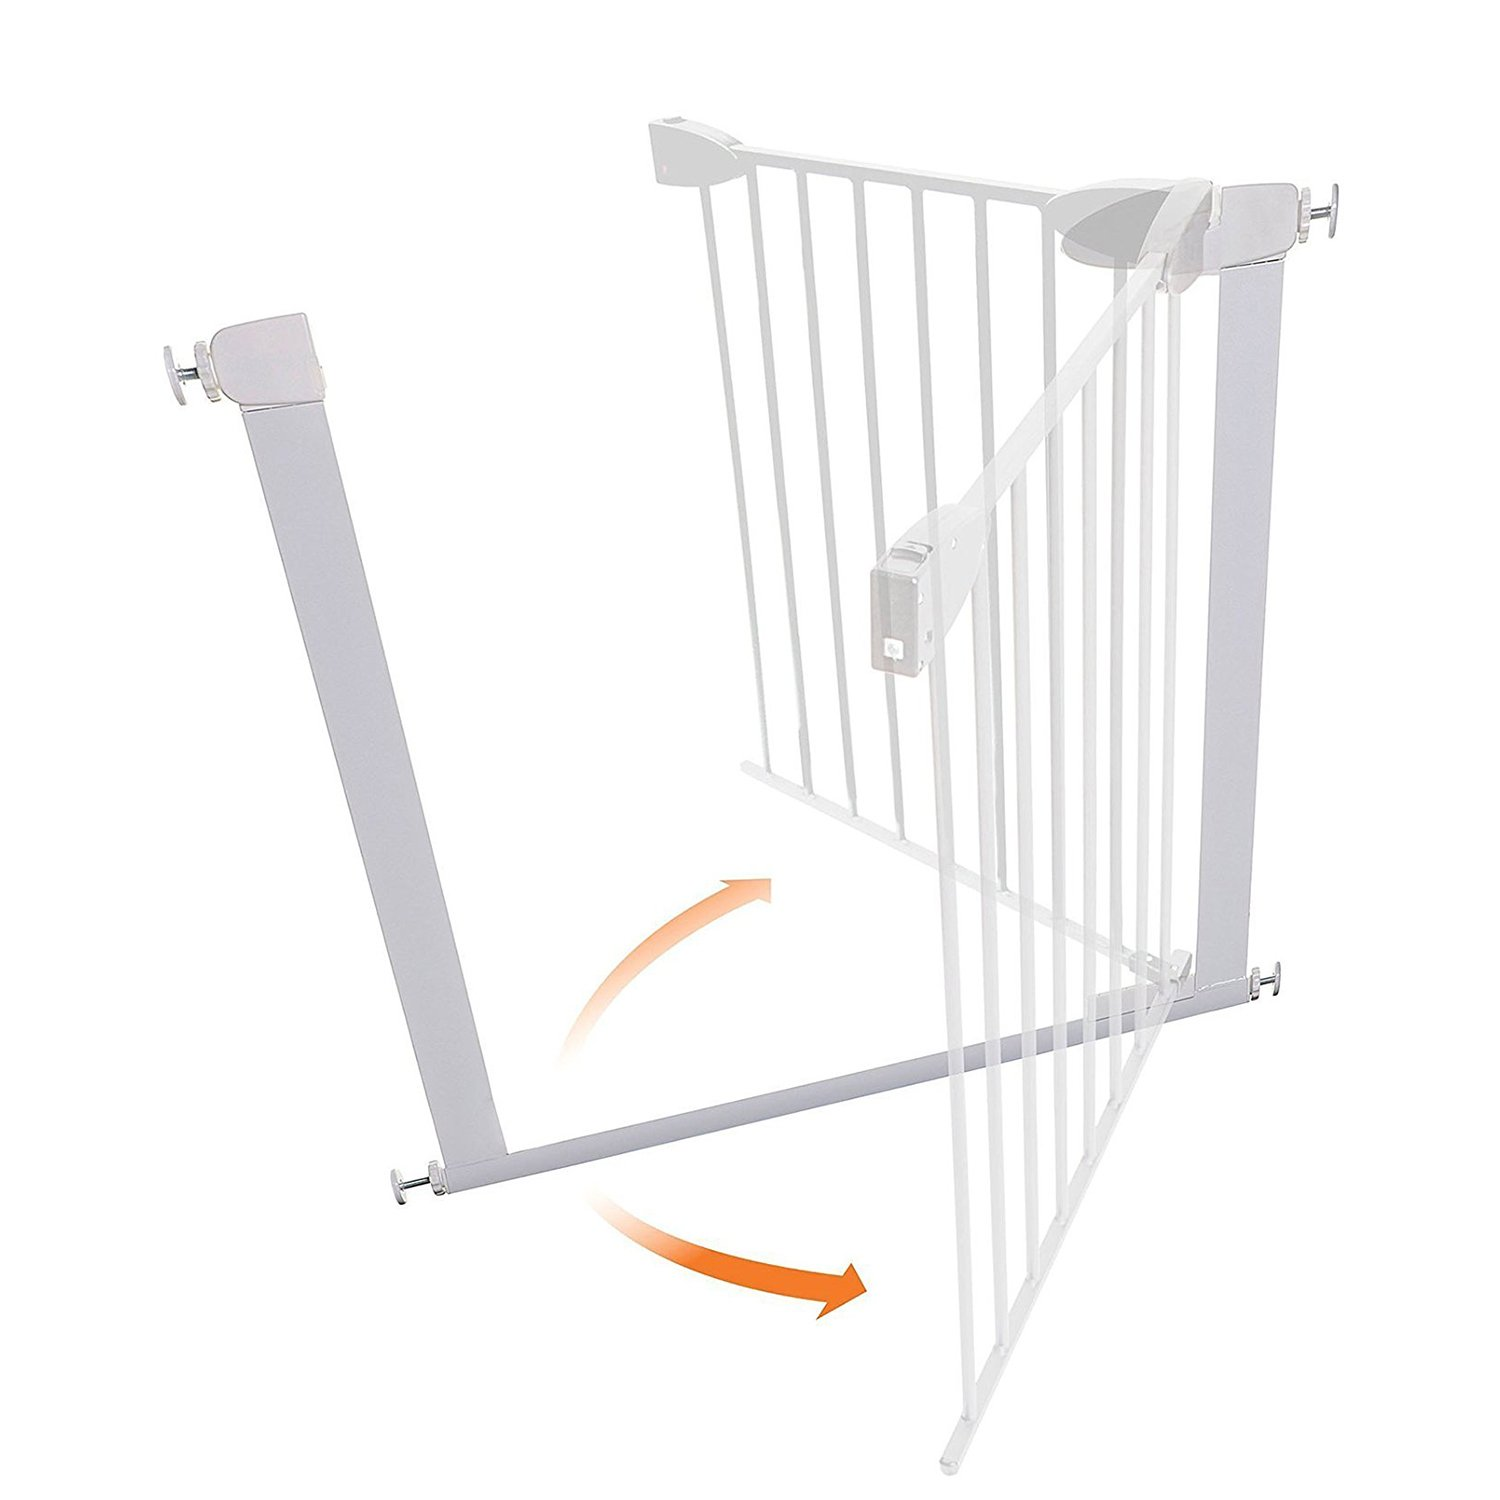 Fairy Baby Easy Step Walk Thru Pet and Baby Gate Expandable 29.5'' High,Fit Spaces 40.55''-43.31'' by Fairy Baby (Image #6)